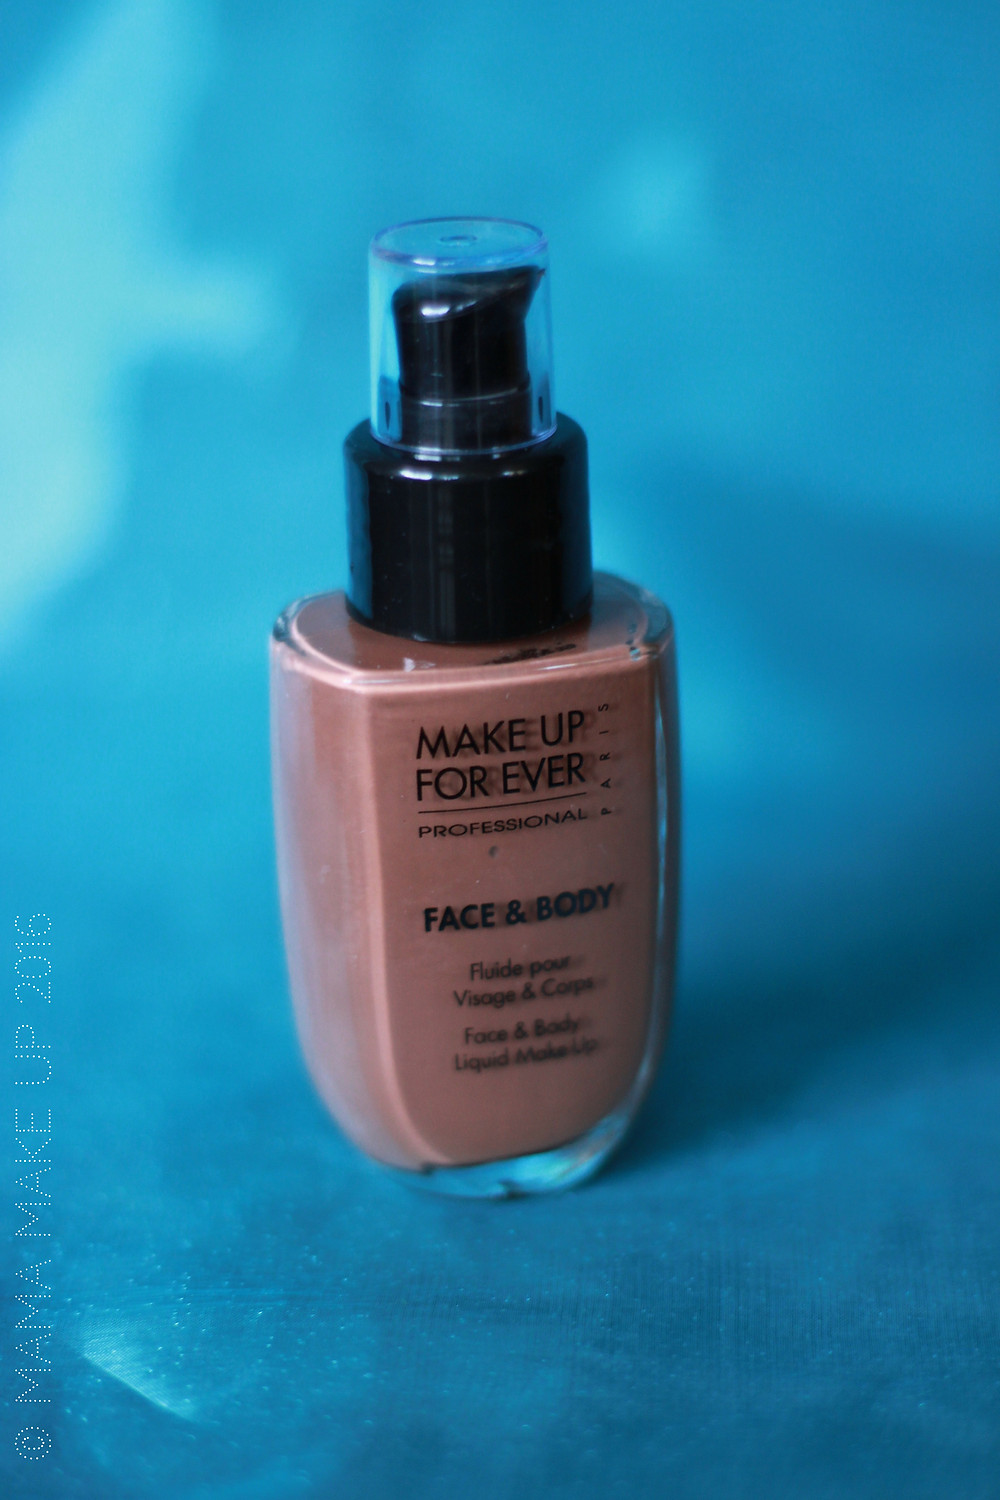 make up forever face & body meikkivoide